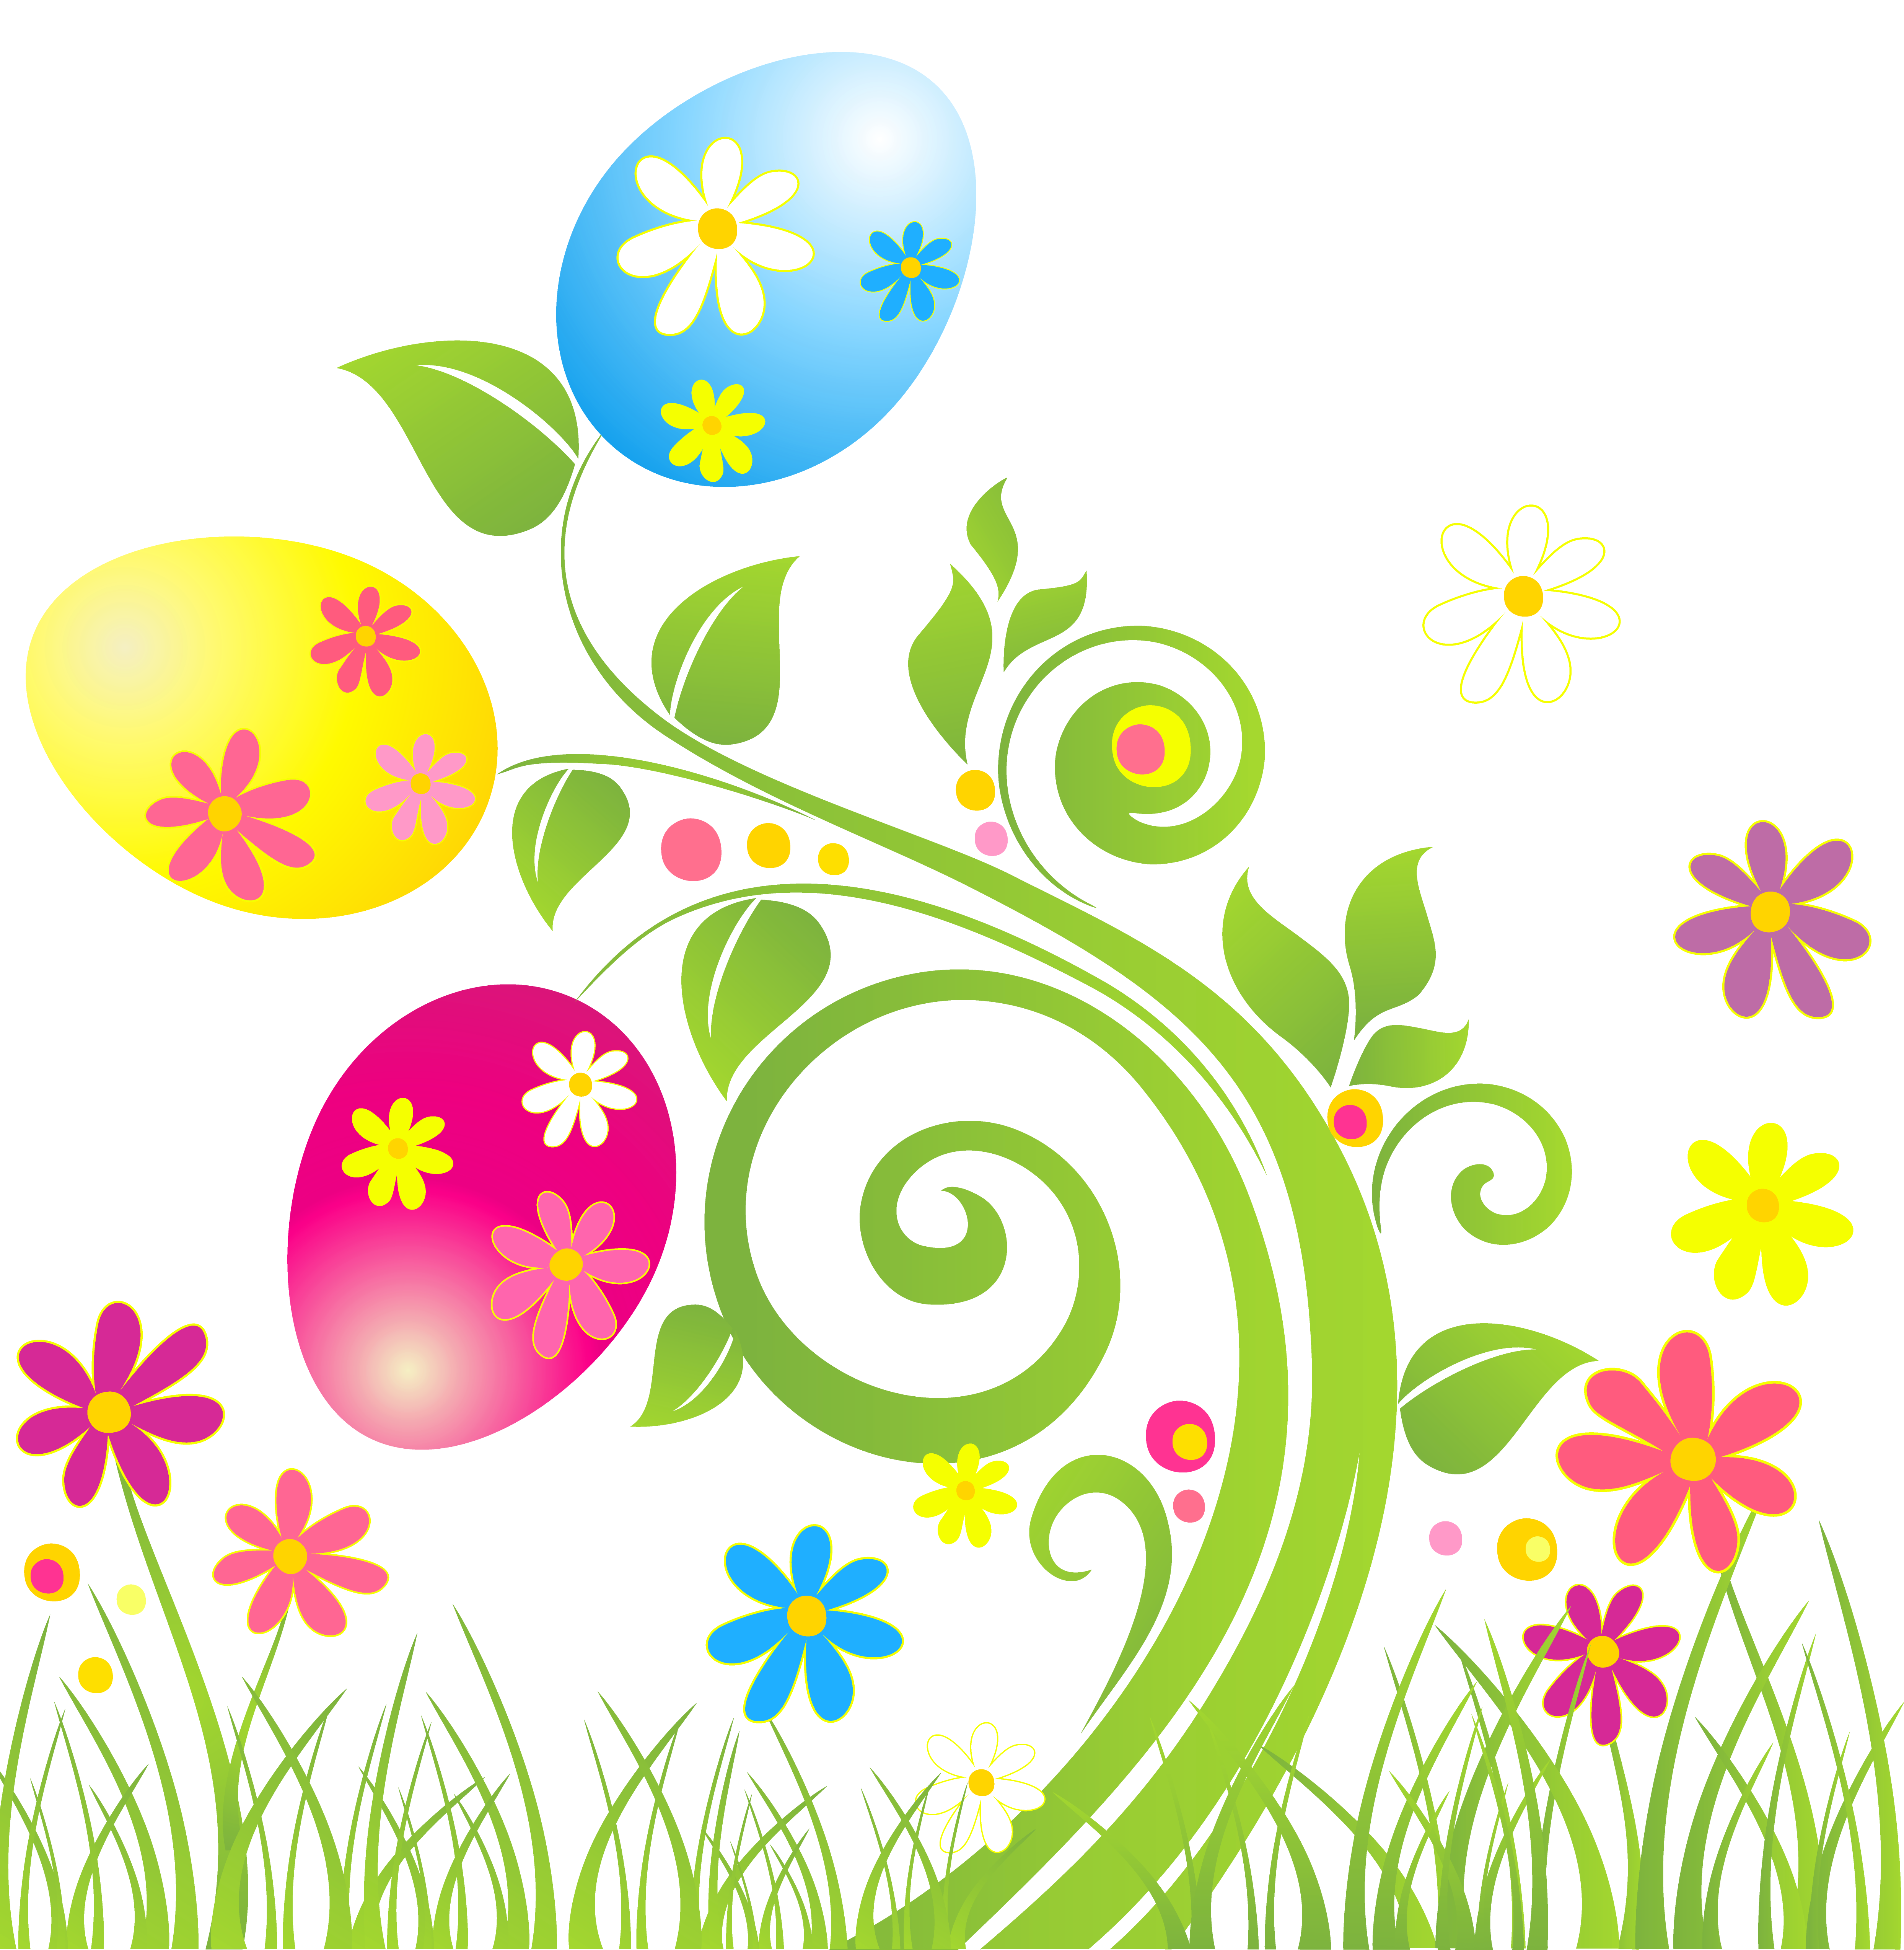 Free Easter Flowers Cliparts, Download Free Clip Art, Free.